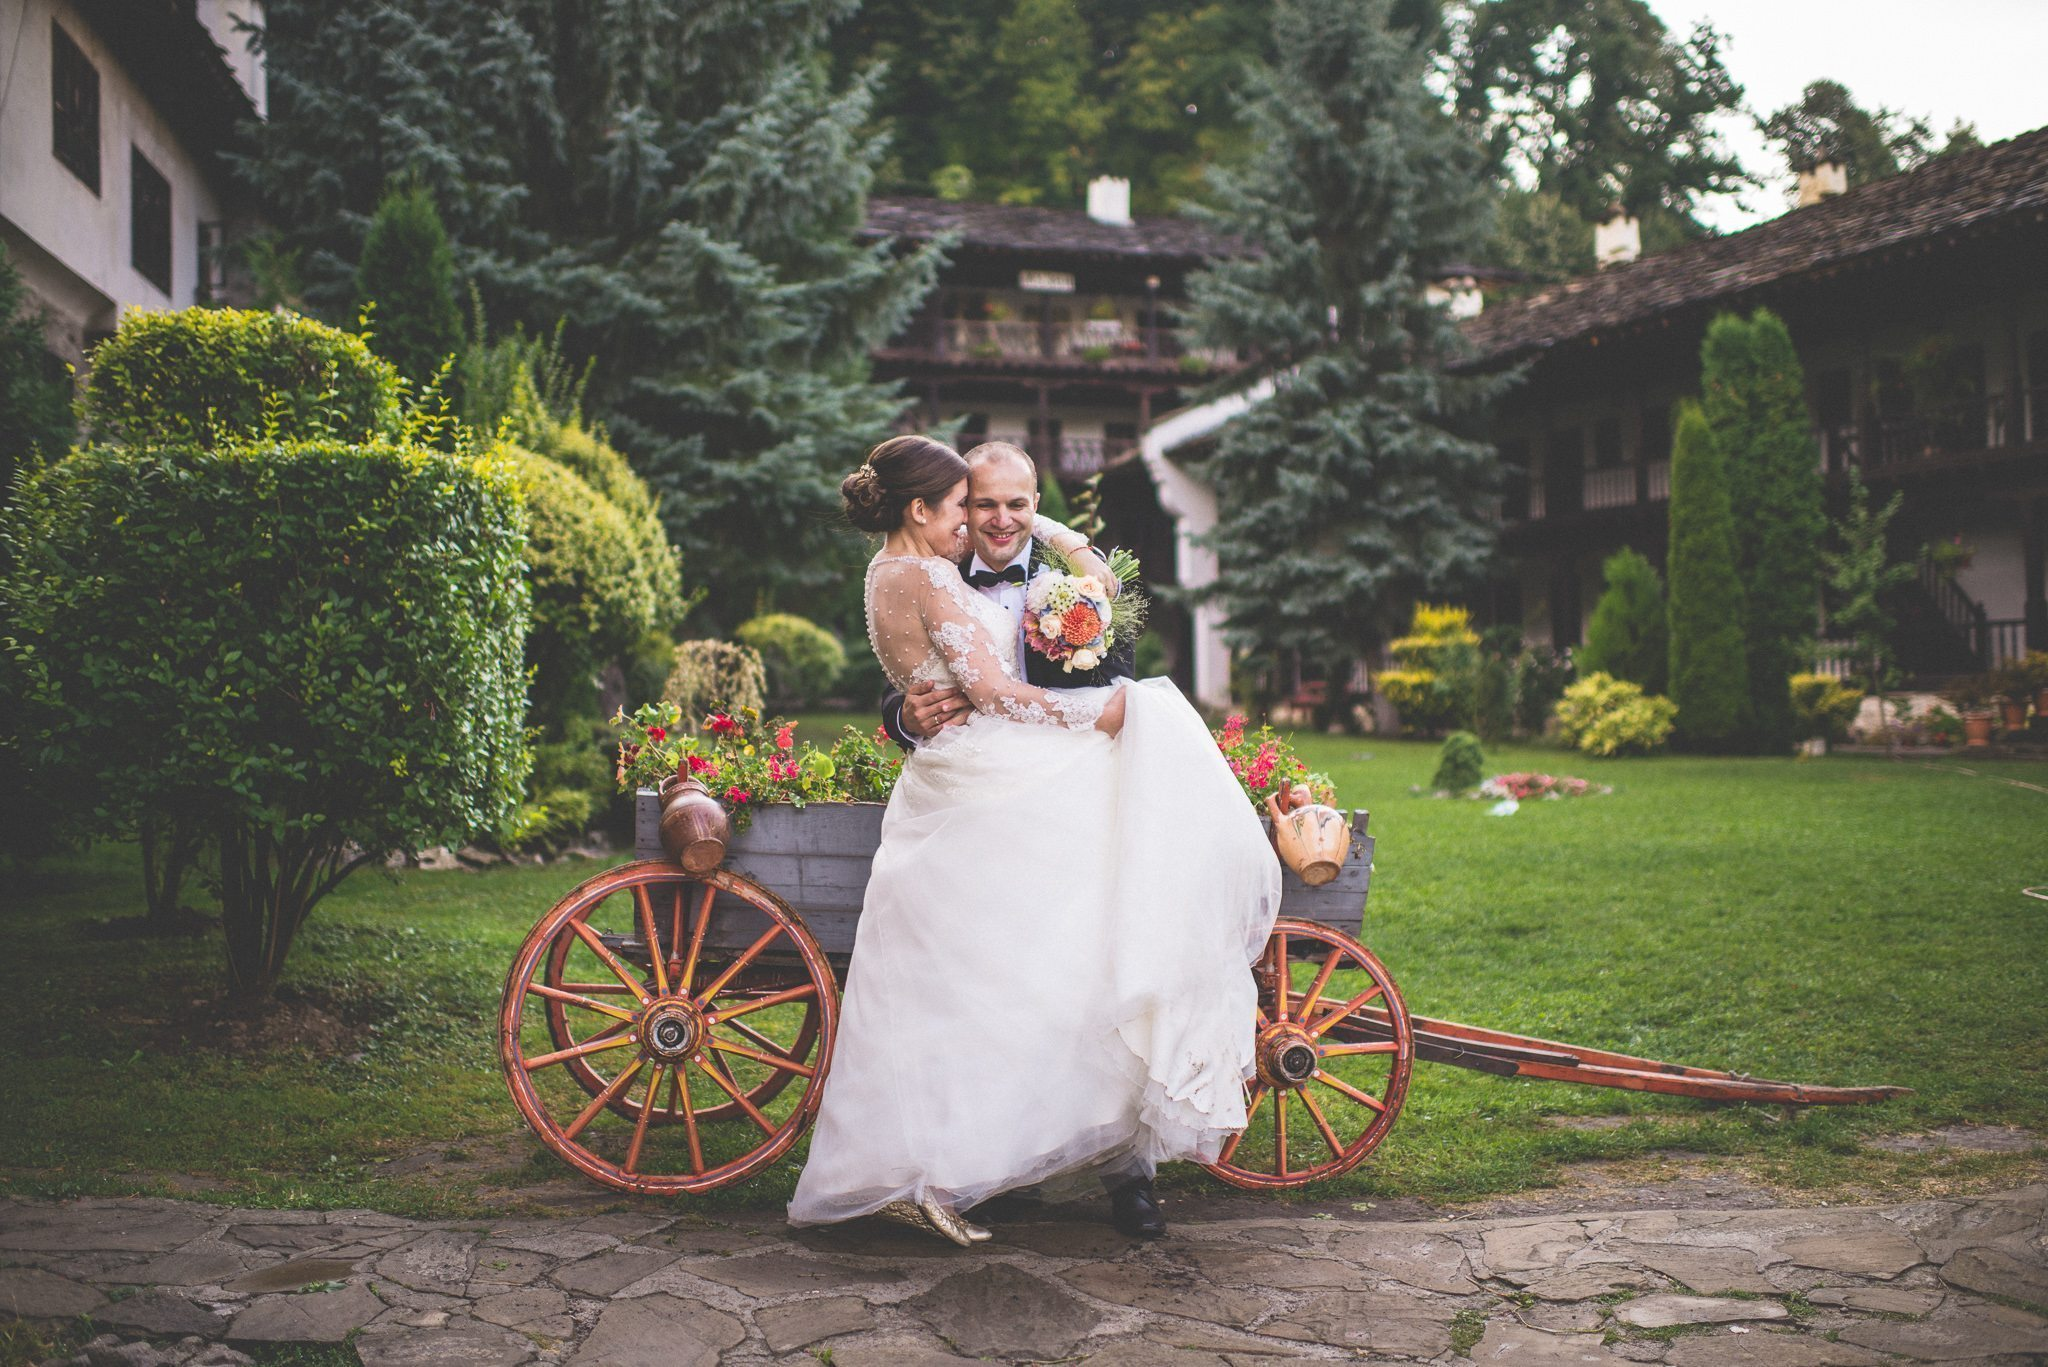 A bride kisses her groom on the cheek. They sit in a flower filled carriage in the grounds of a monastery